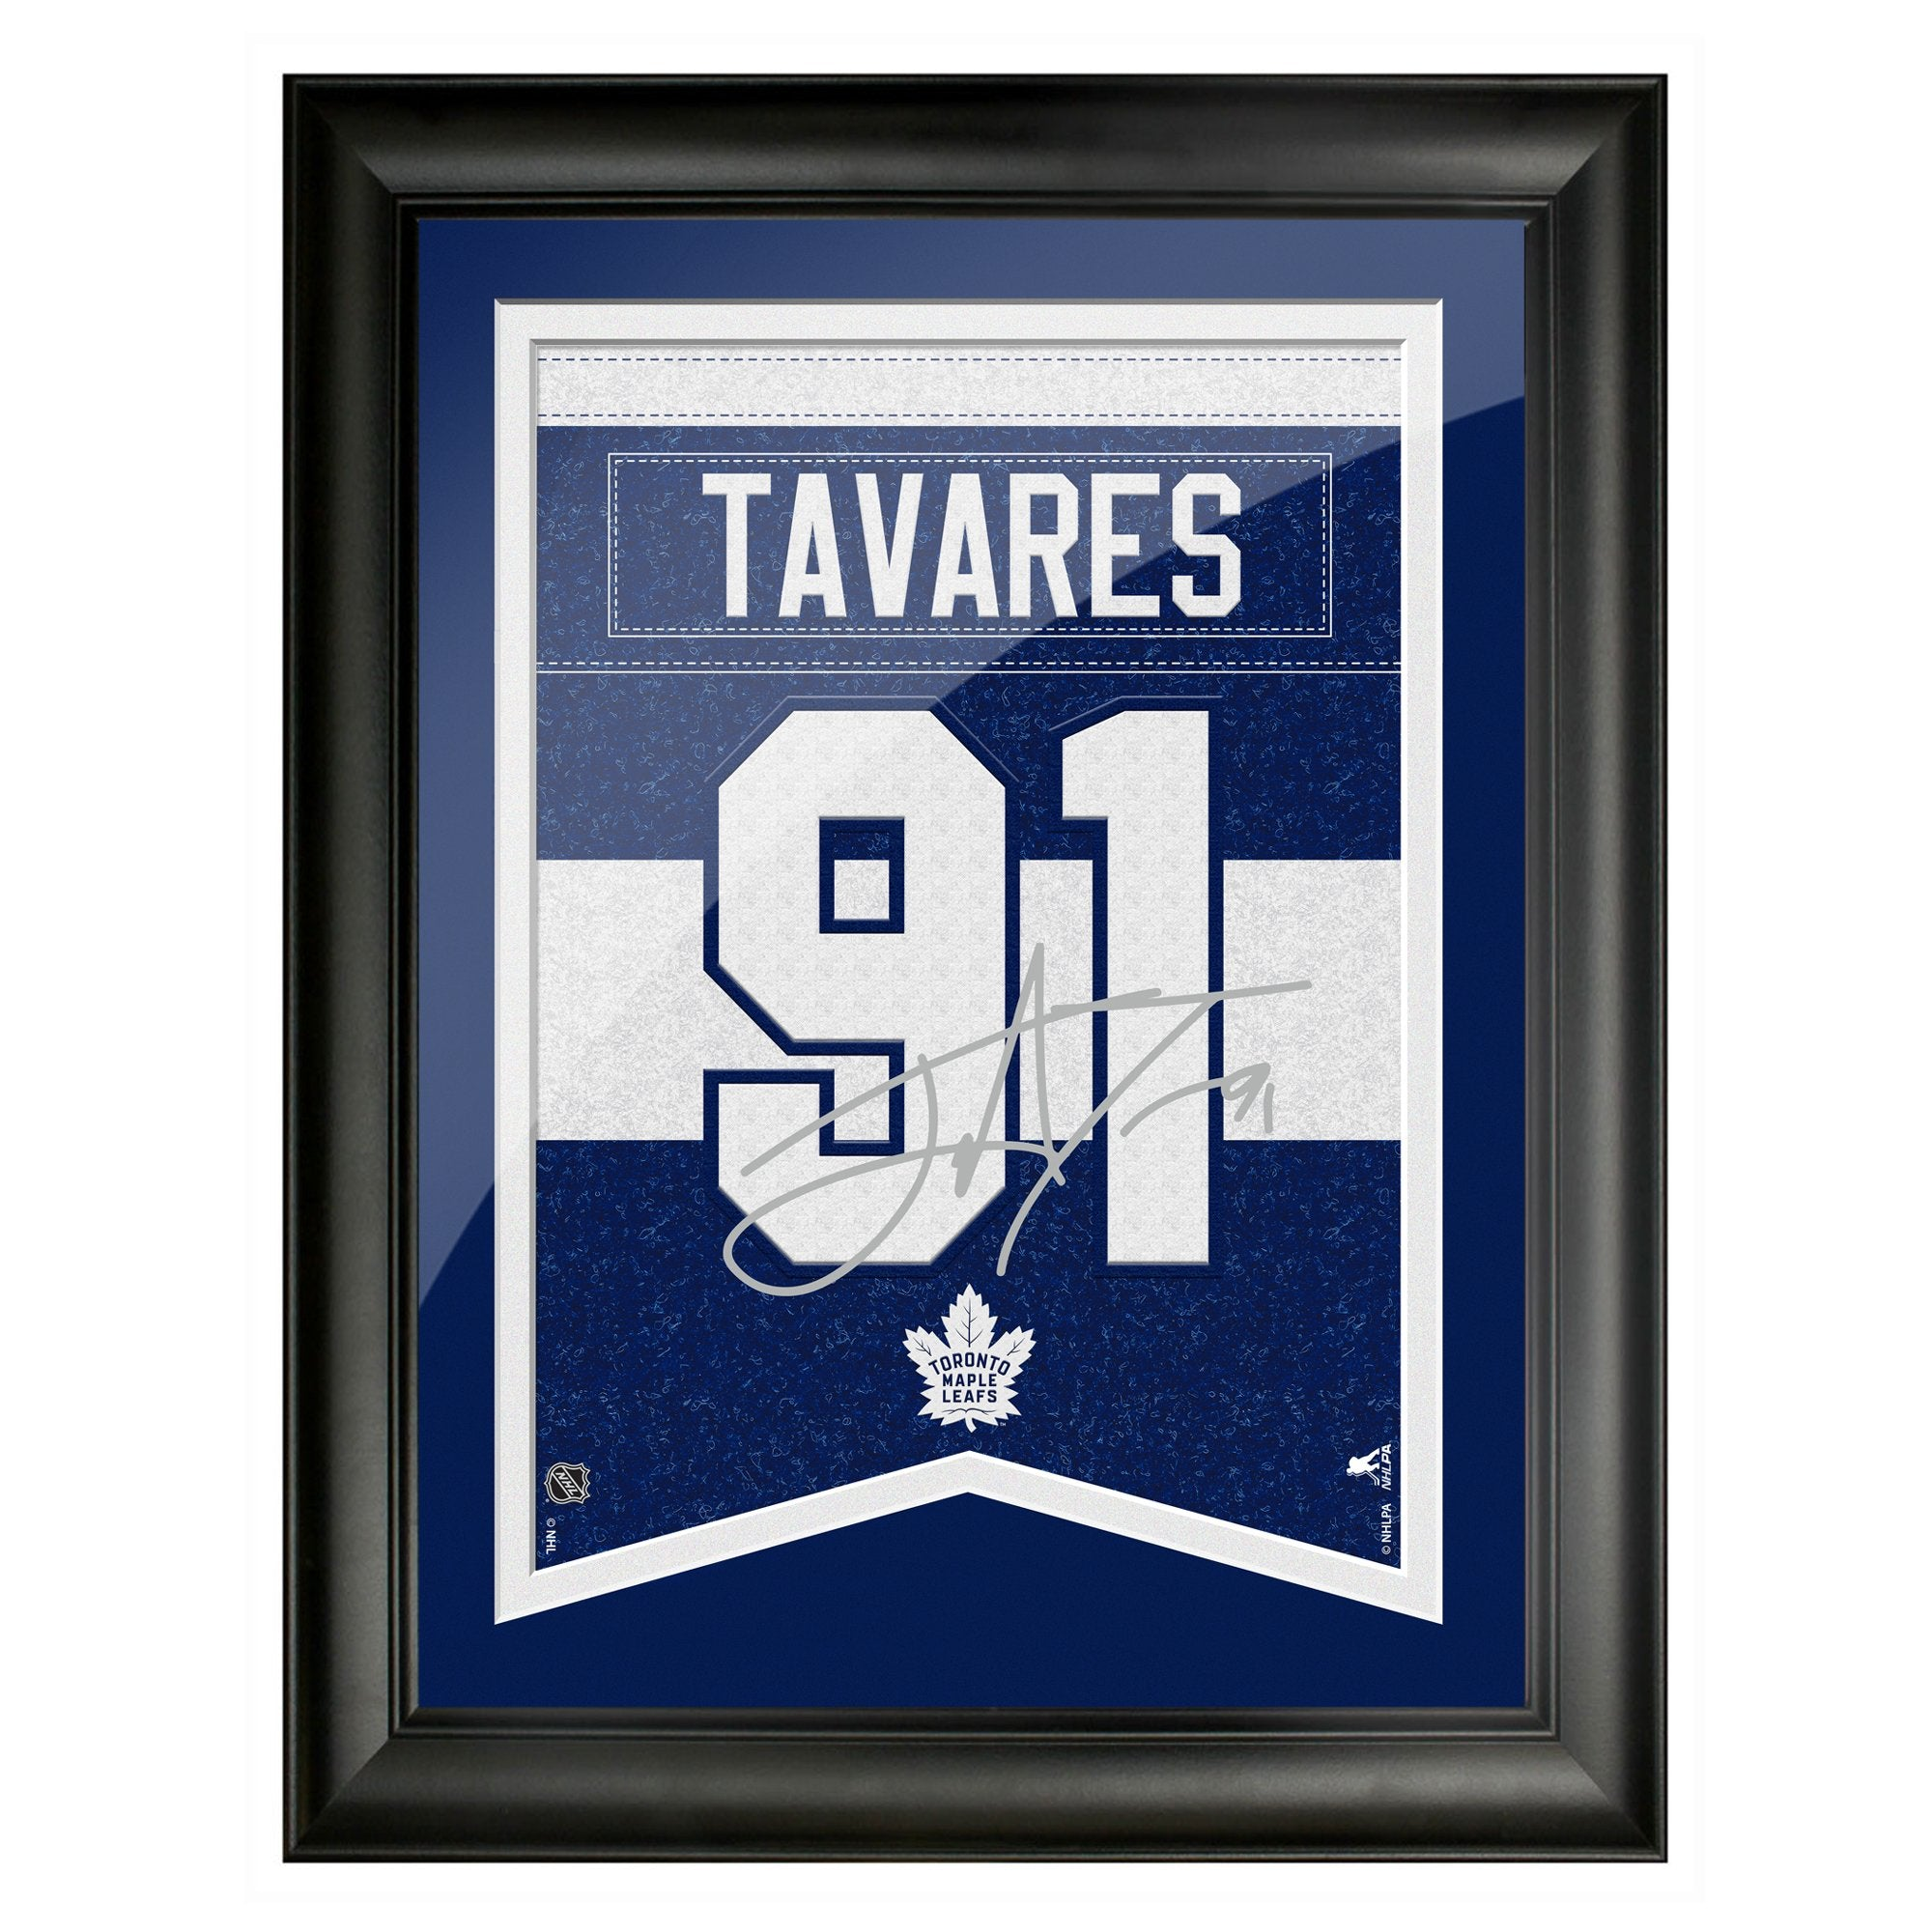 Toronto Maple Leafs Tavares 12x16 Framed Player Number with Replica Autograph